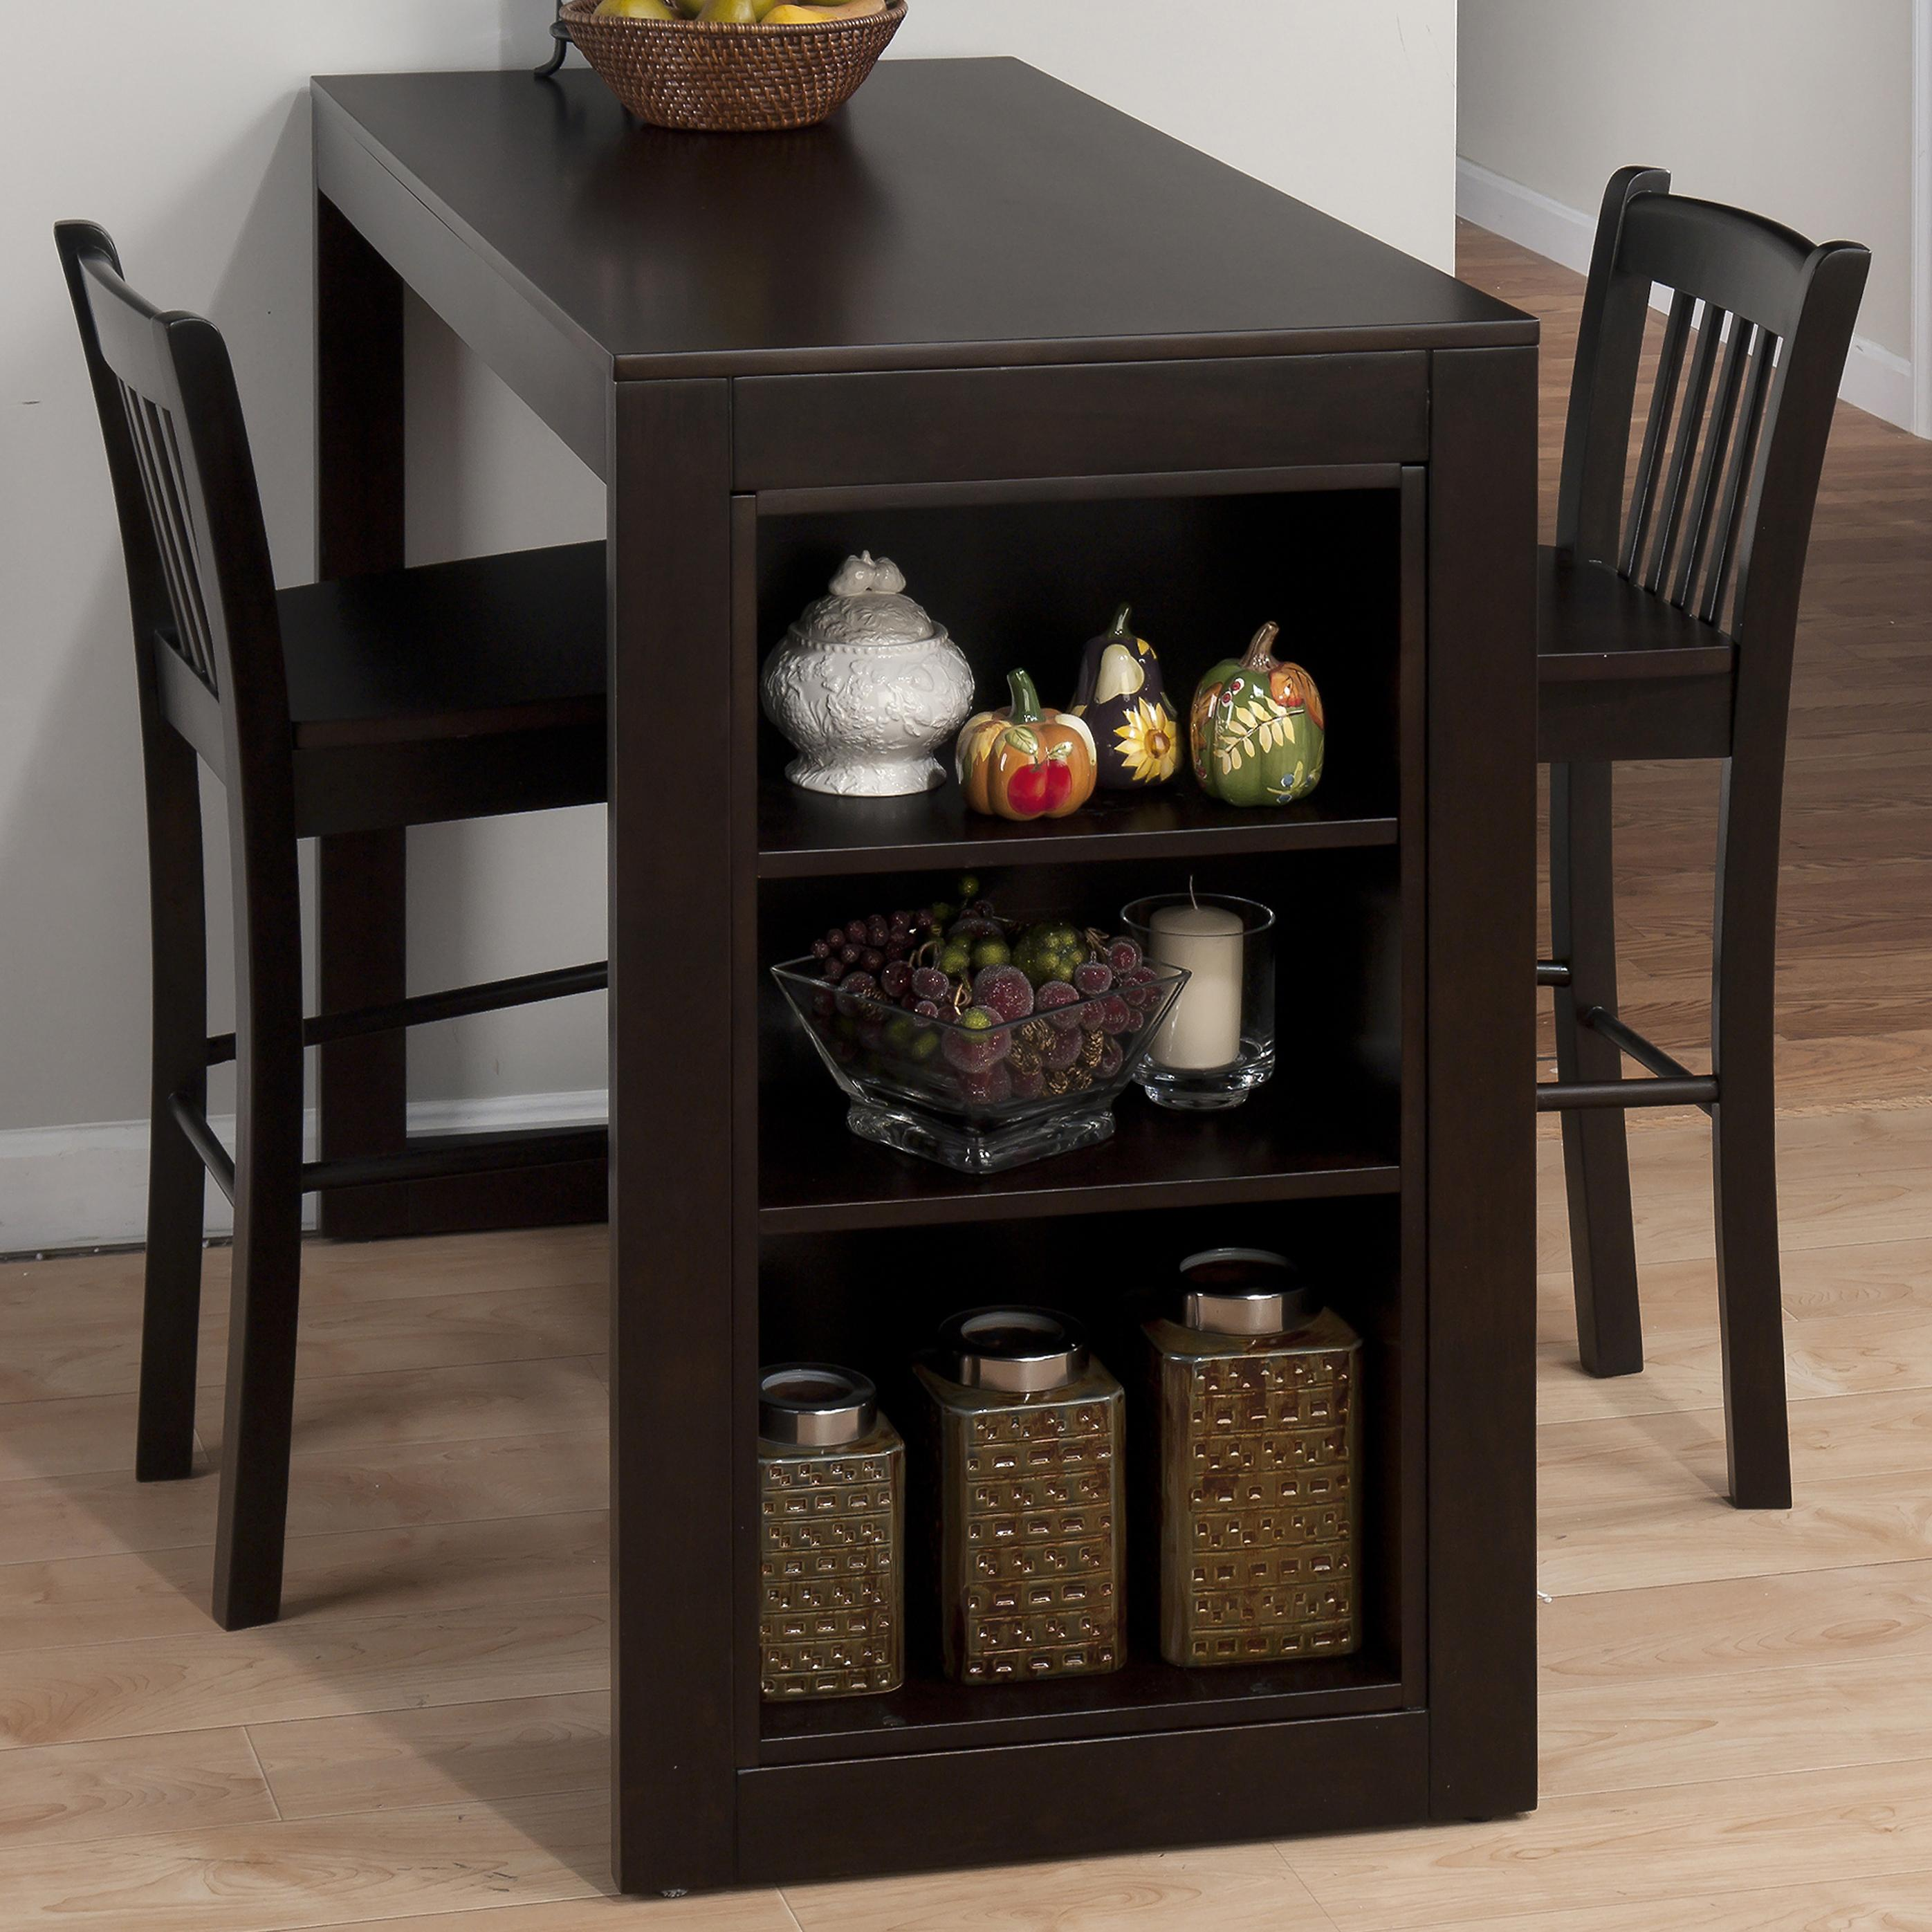 Morris Home Furnishings Yatesville Yatesville Counter Height Table - Item Number: 810-48